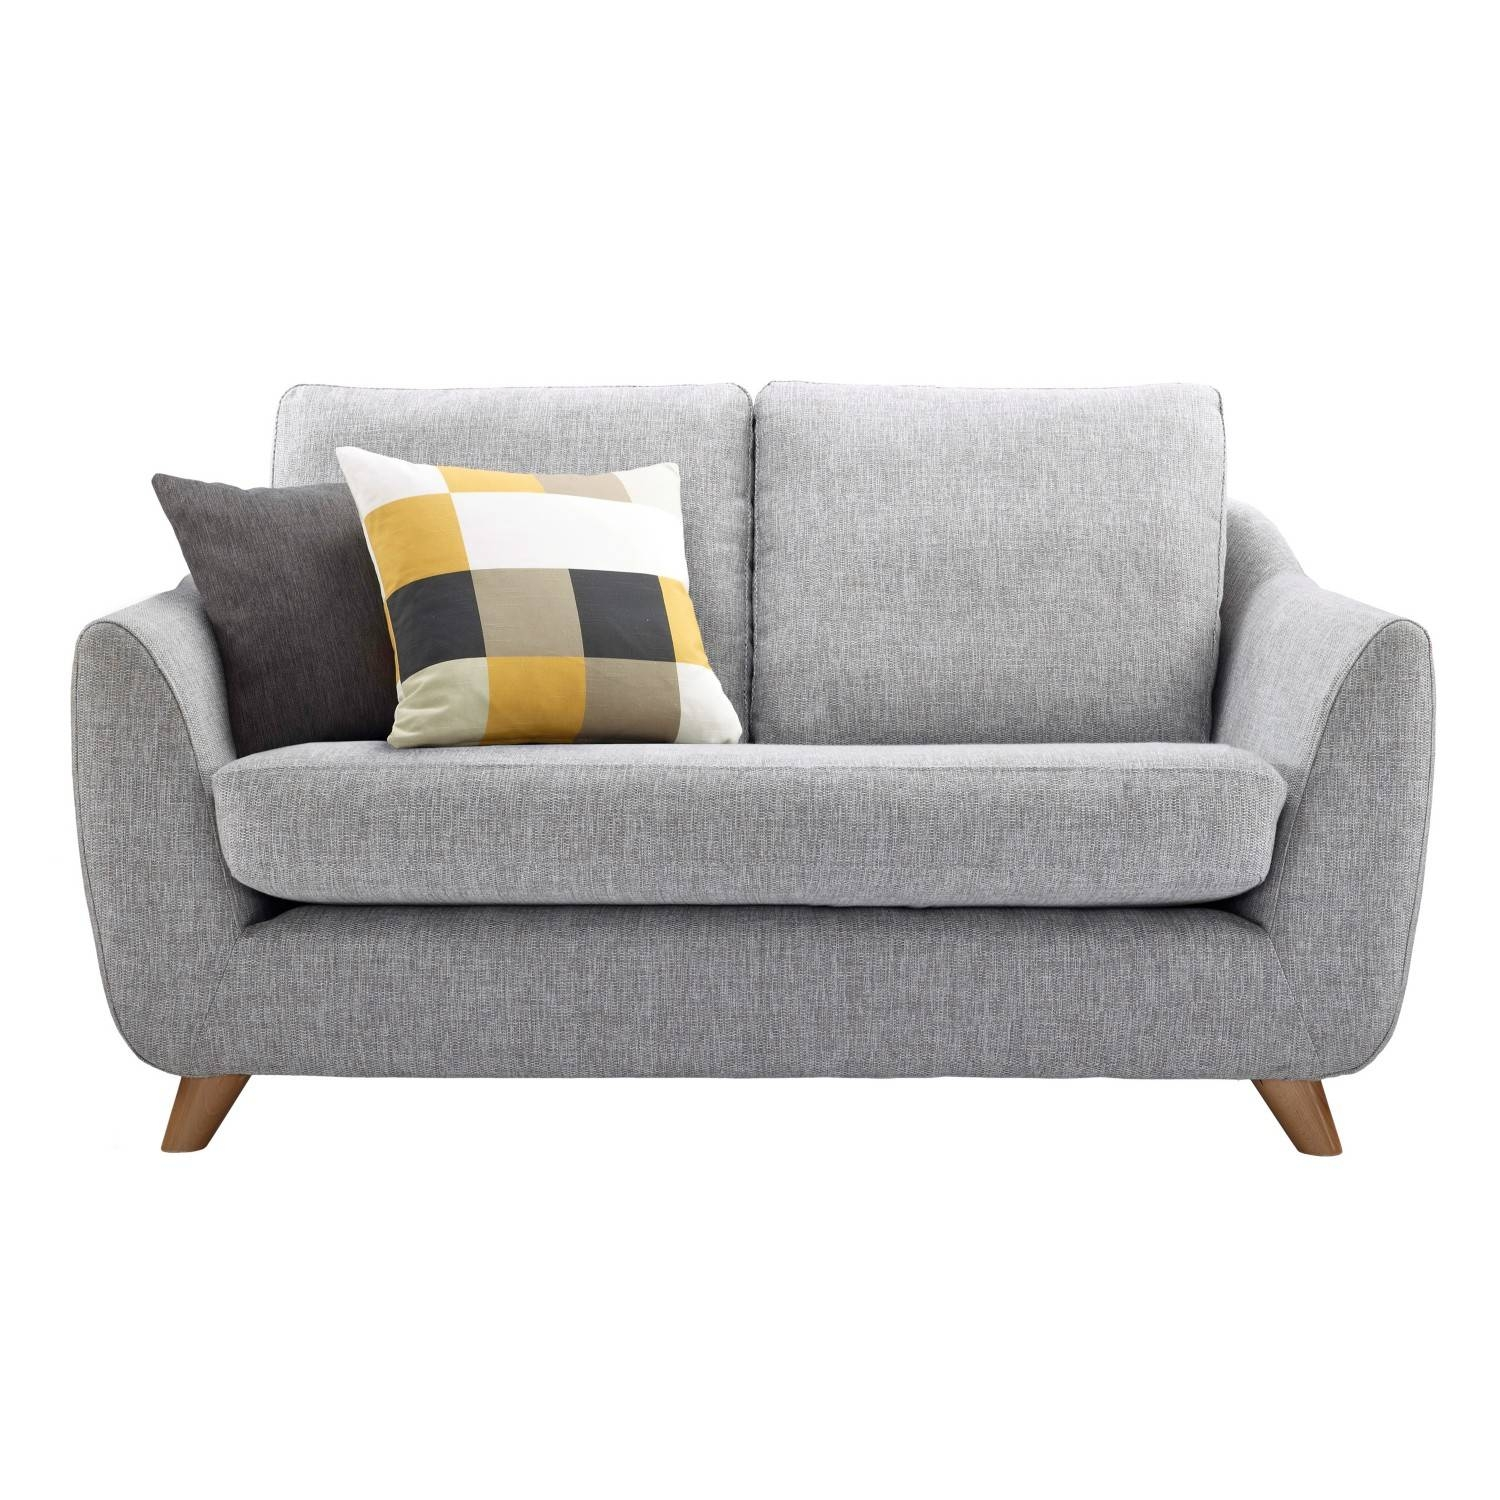 Furniture: Interior Modern Sofa Bed Cute Sofas Design Interior with regard to Commercial Sofas (Image 7 of 15)